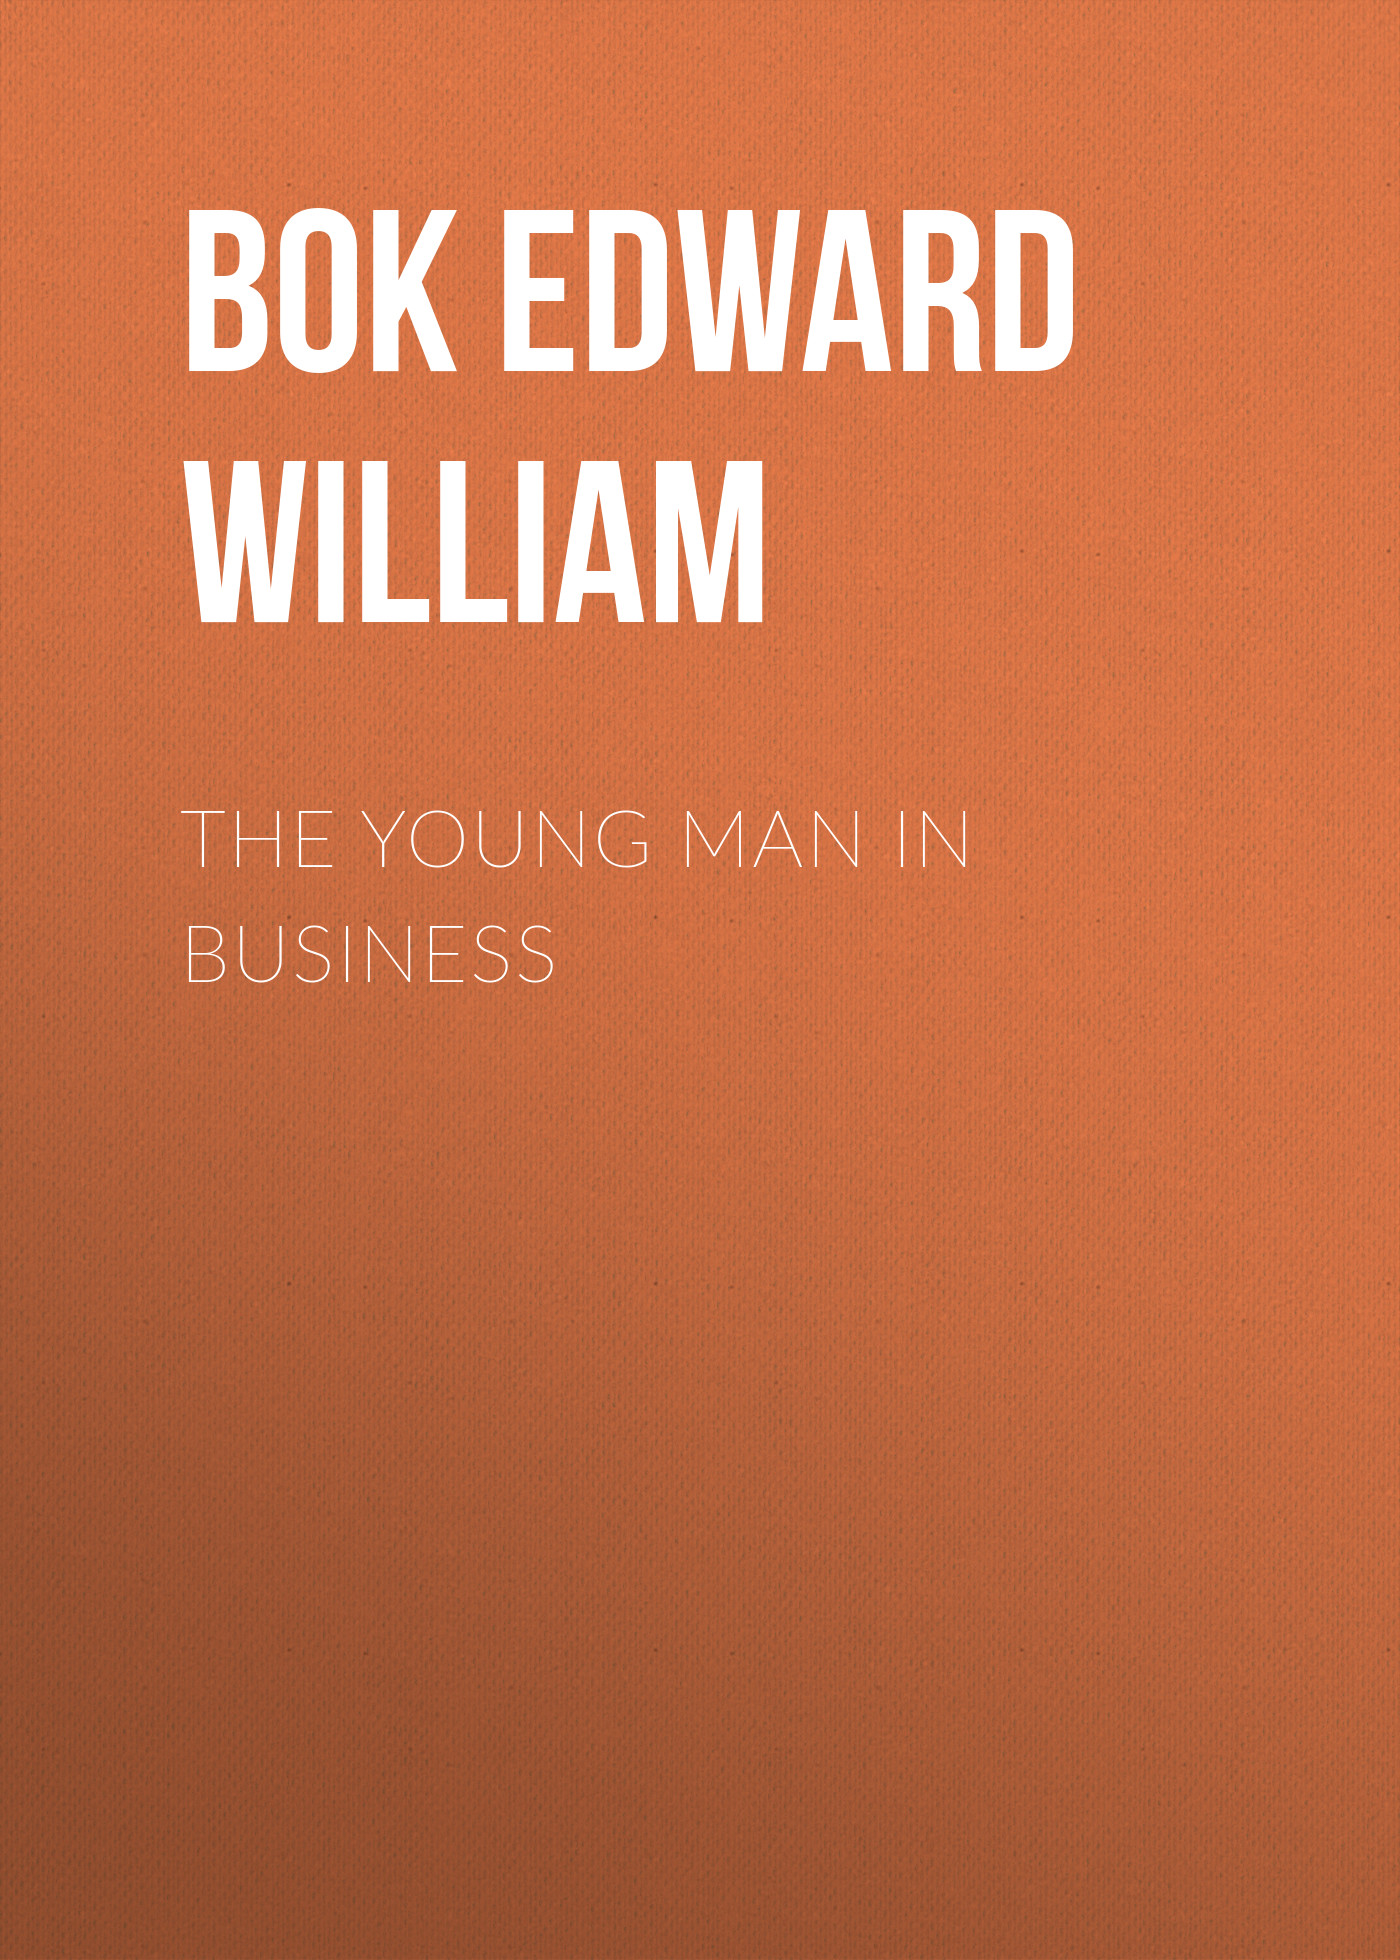 Bok Edward William The Young Man in Business